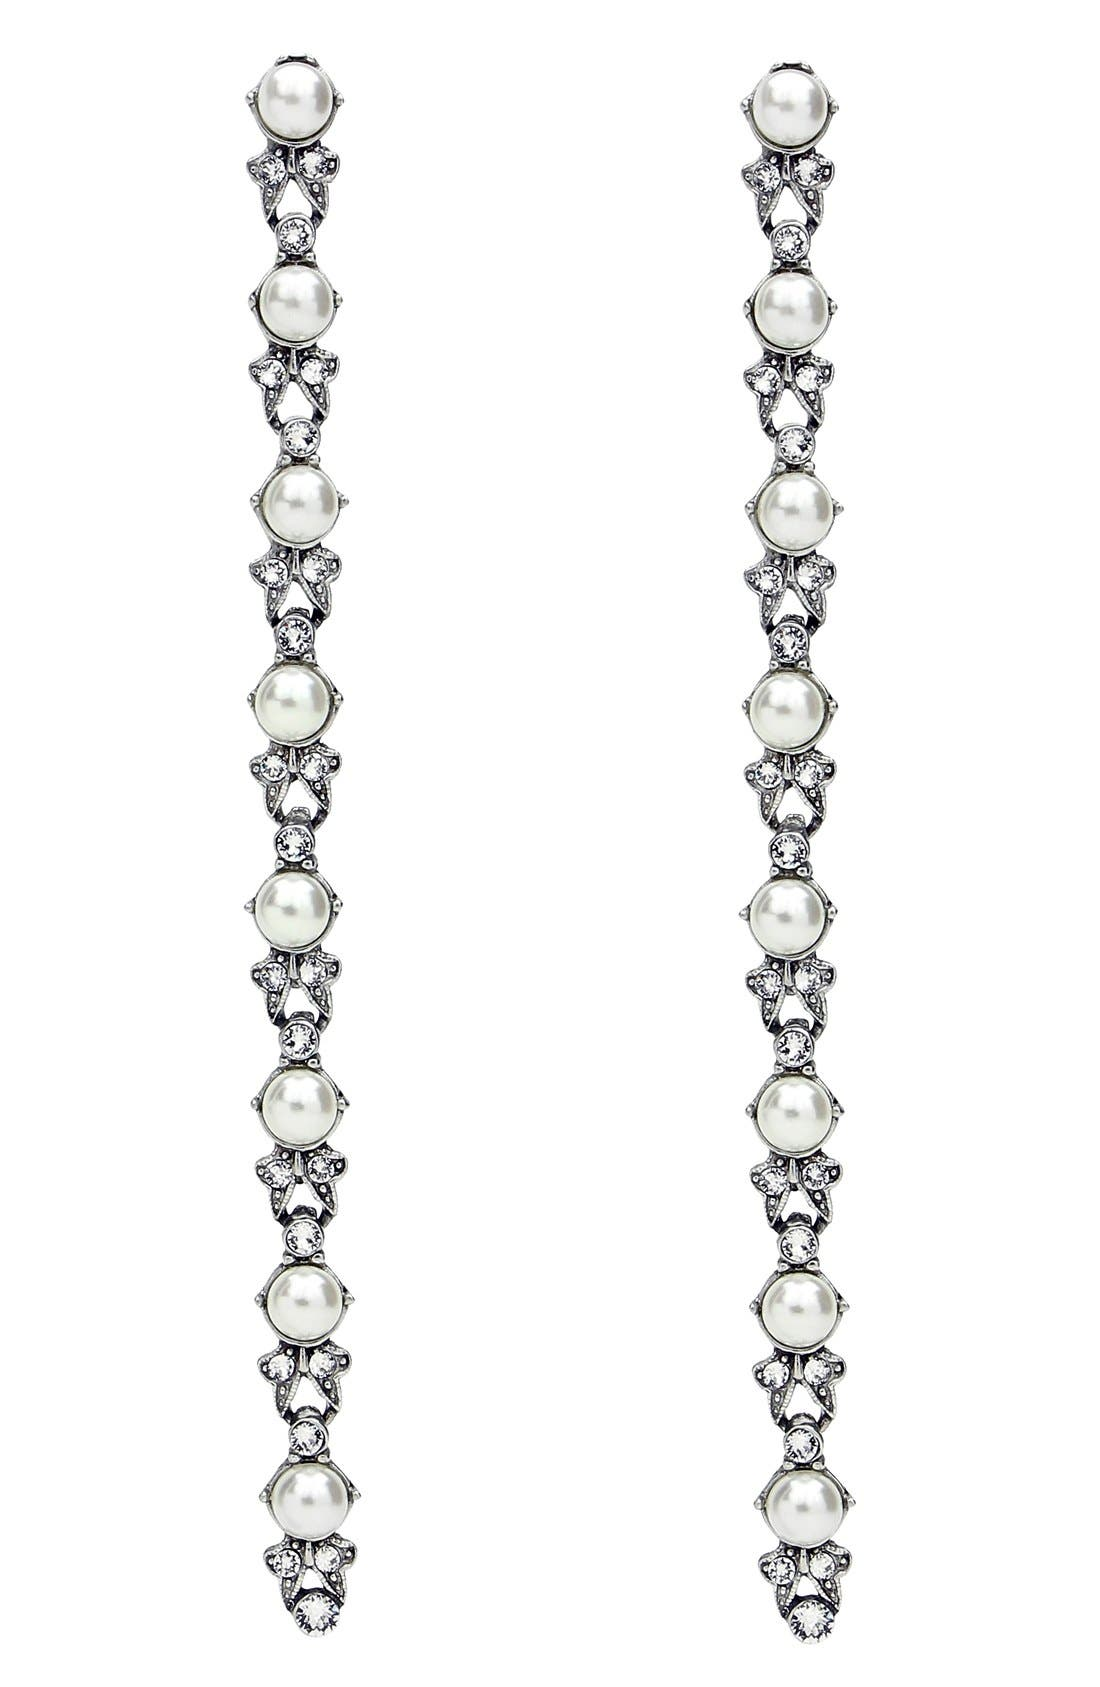 Faux Pearl & Crystal Linear Drop Earrings,                             Main thumbnail 1, color,                             Clear